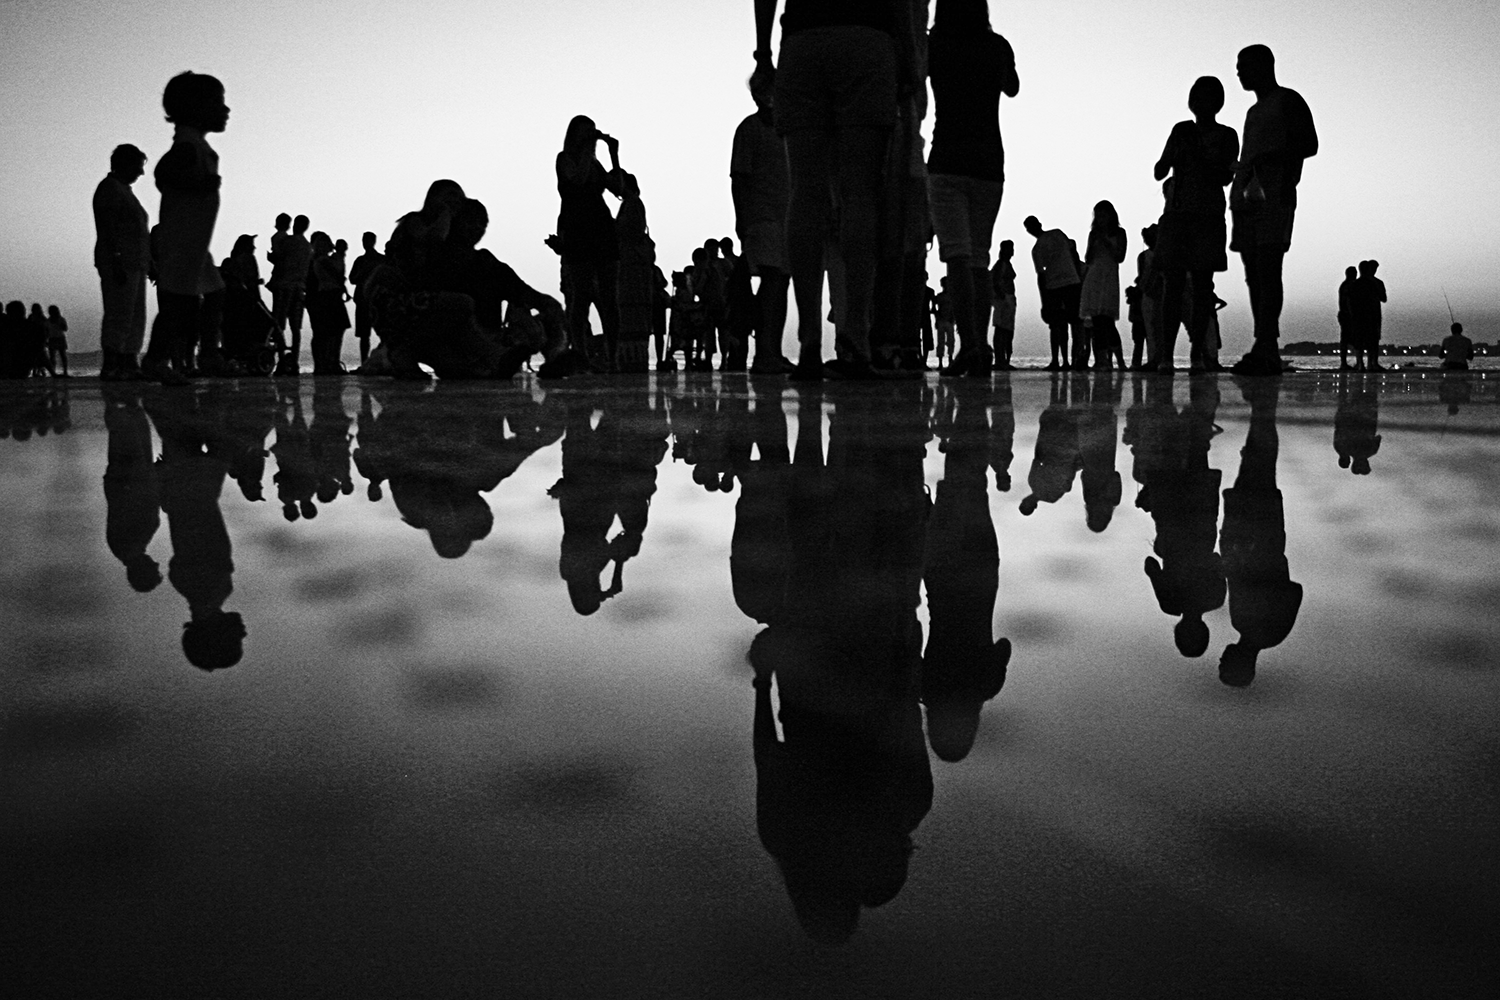 black and white image silhouettes of group systems coaching